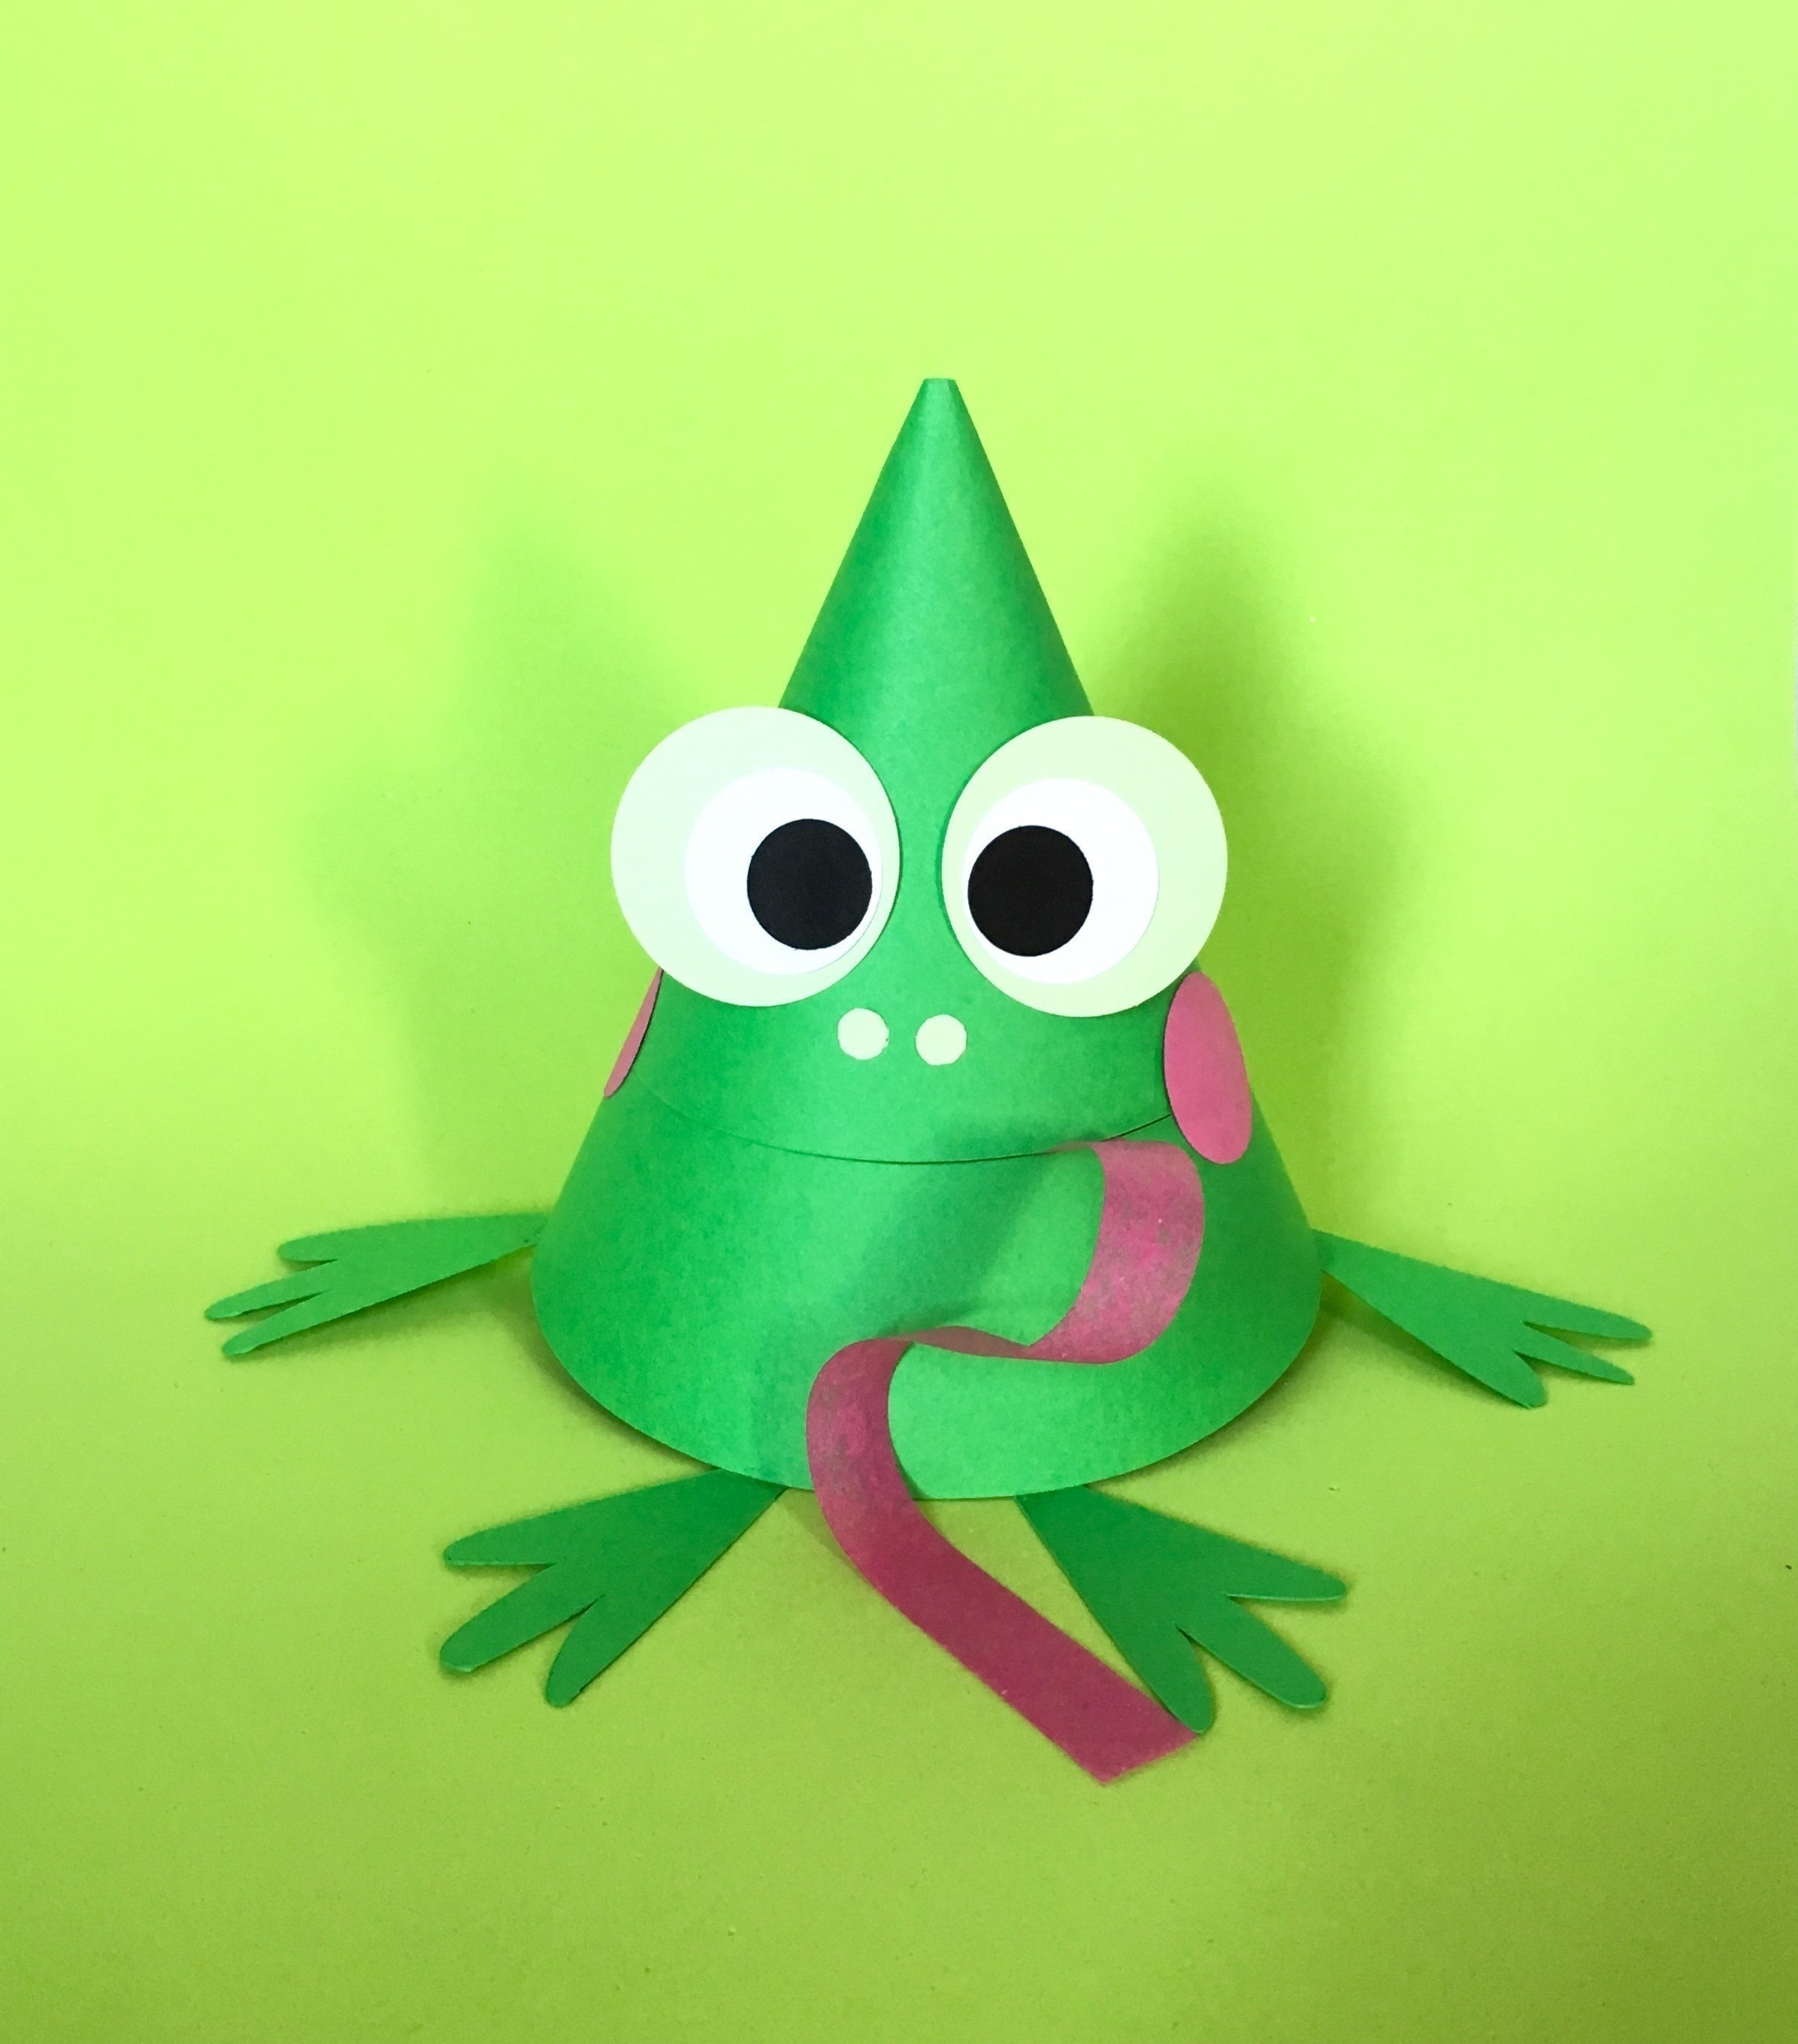 Cone Shaped Frog How To Make A Paper Model Papercraft